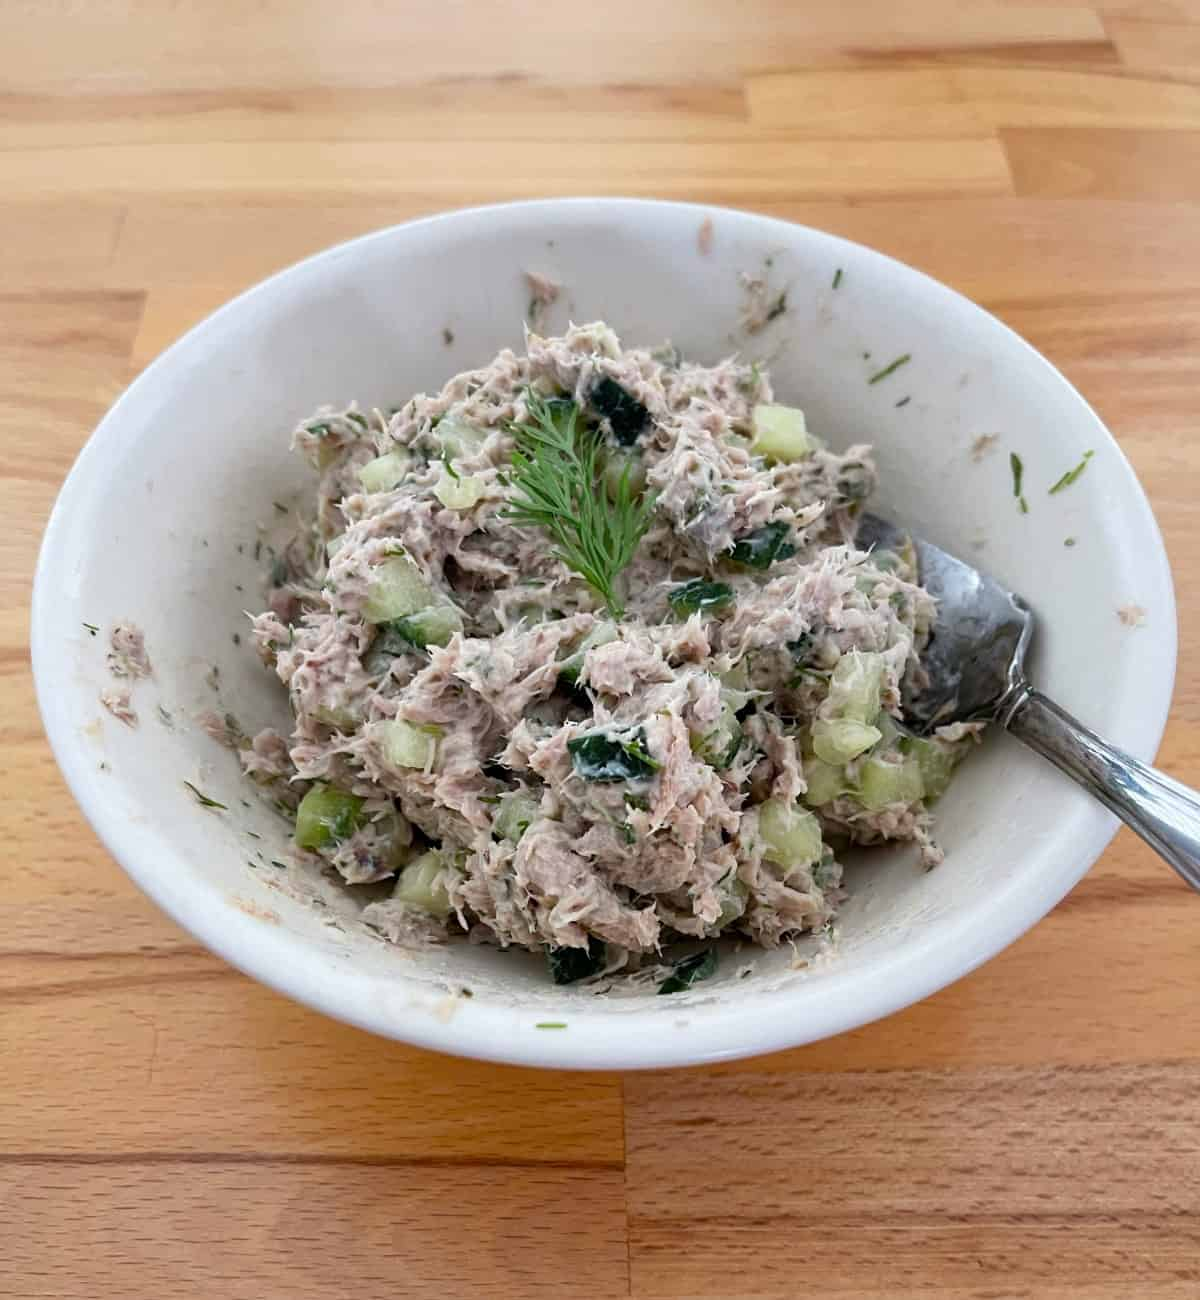 Tuna Dill Spread in white bowl with fork and fresh dill garnish.